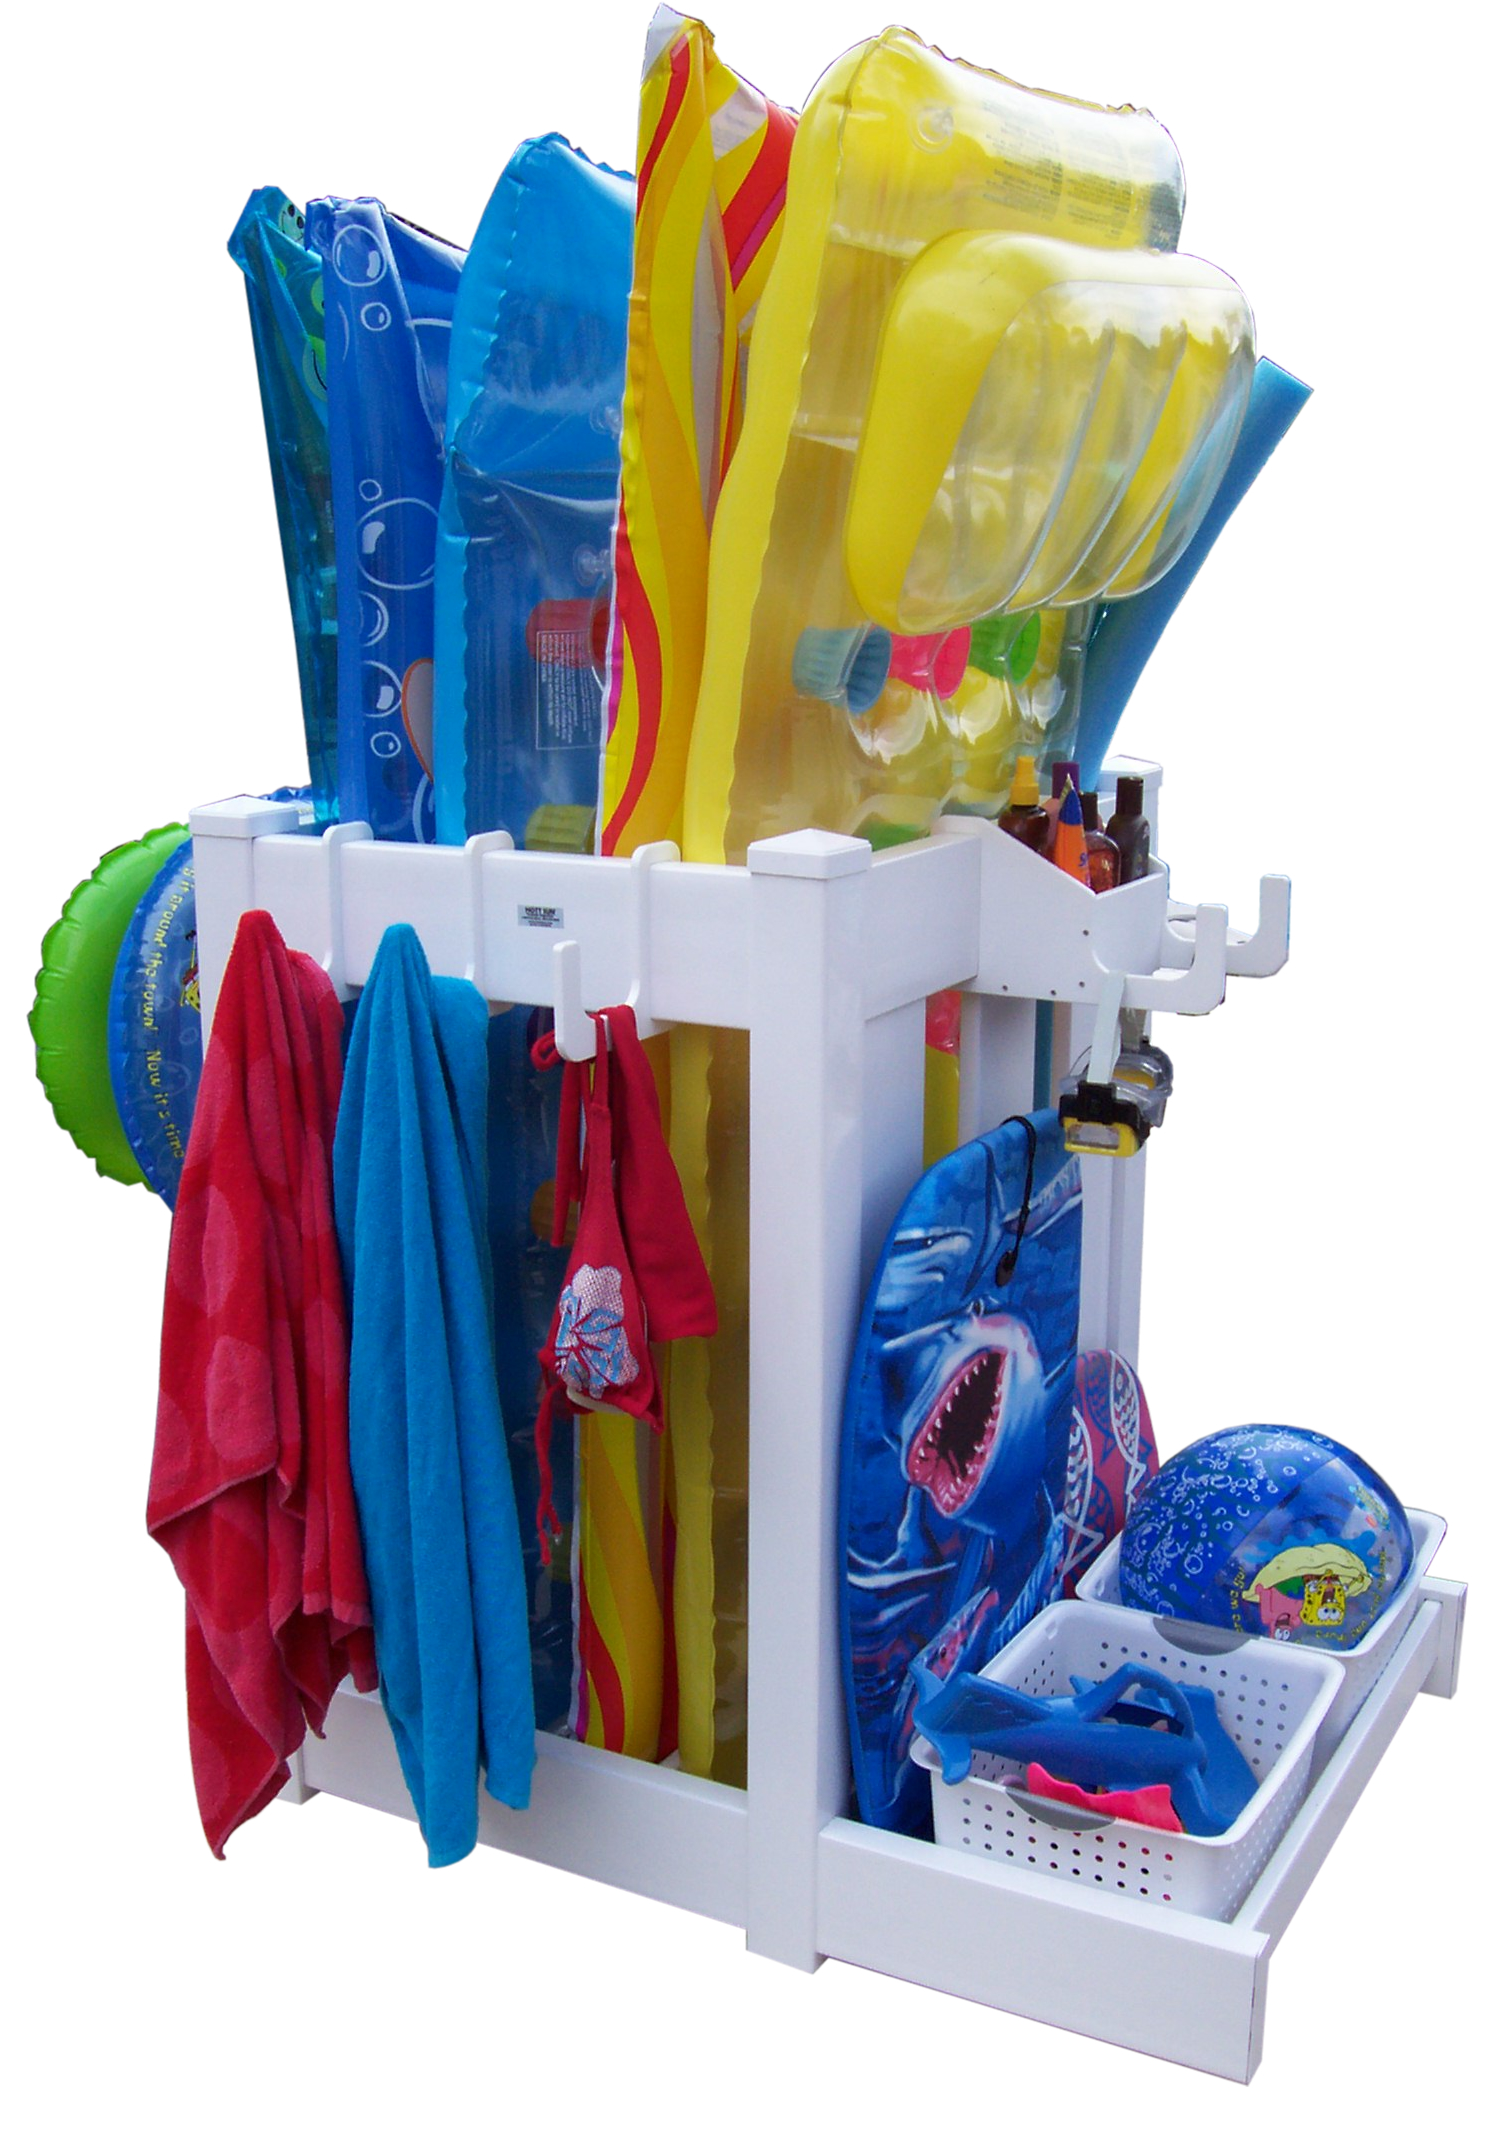 Hott Sun Investments, Poolside OrganizerThe Poolside Organizer Is An  Innovative Creation That Helps You Keep All Of Your Pool Accessories  Organized, Dry, ...